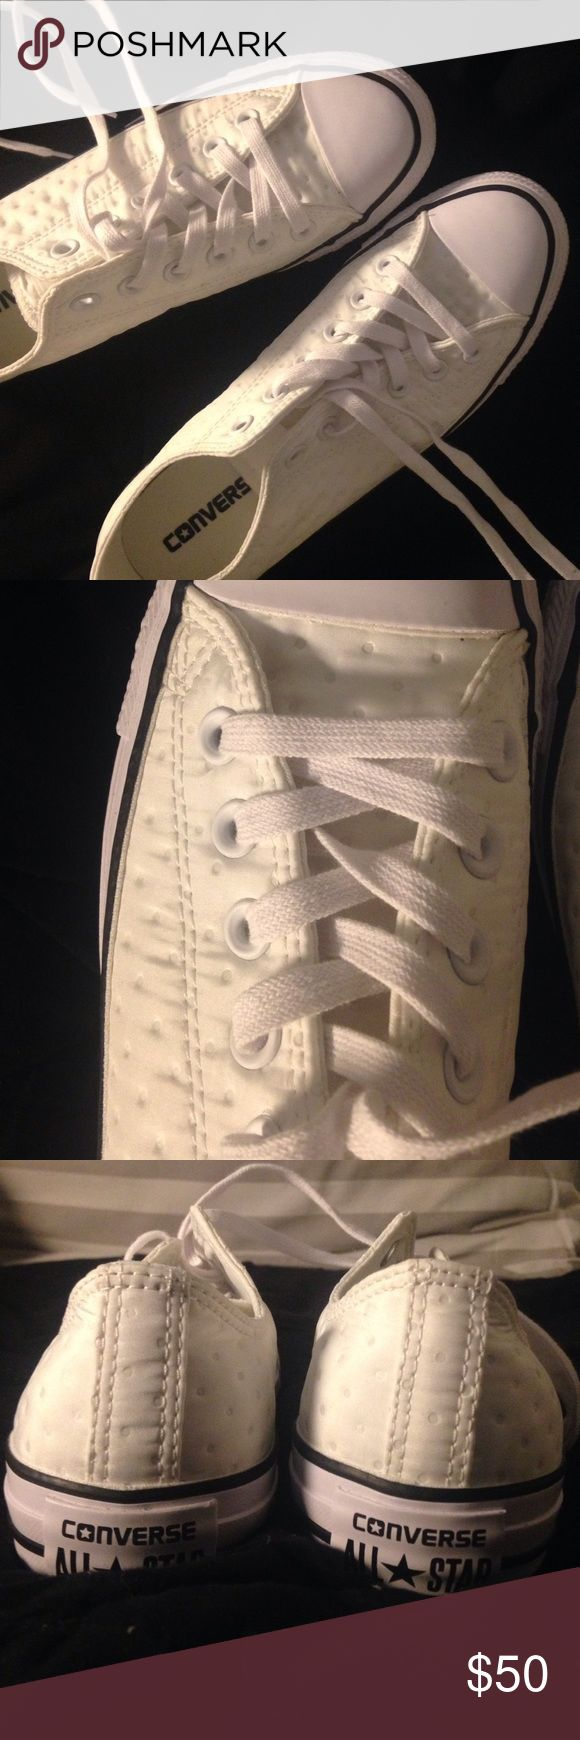 """NEVER WORN Women's White Textured Converse, Size 8 These shoes are a size too big for me, otherwise I would definitely be keeping them. They put a unique spin on the """"in"""" white converse, as they are a unique textured fabric rather than just the classic canvas. They have never been worn and are brand new! Converse Shoes Sneakers"""